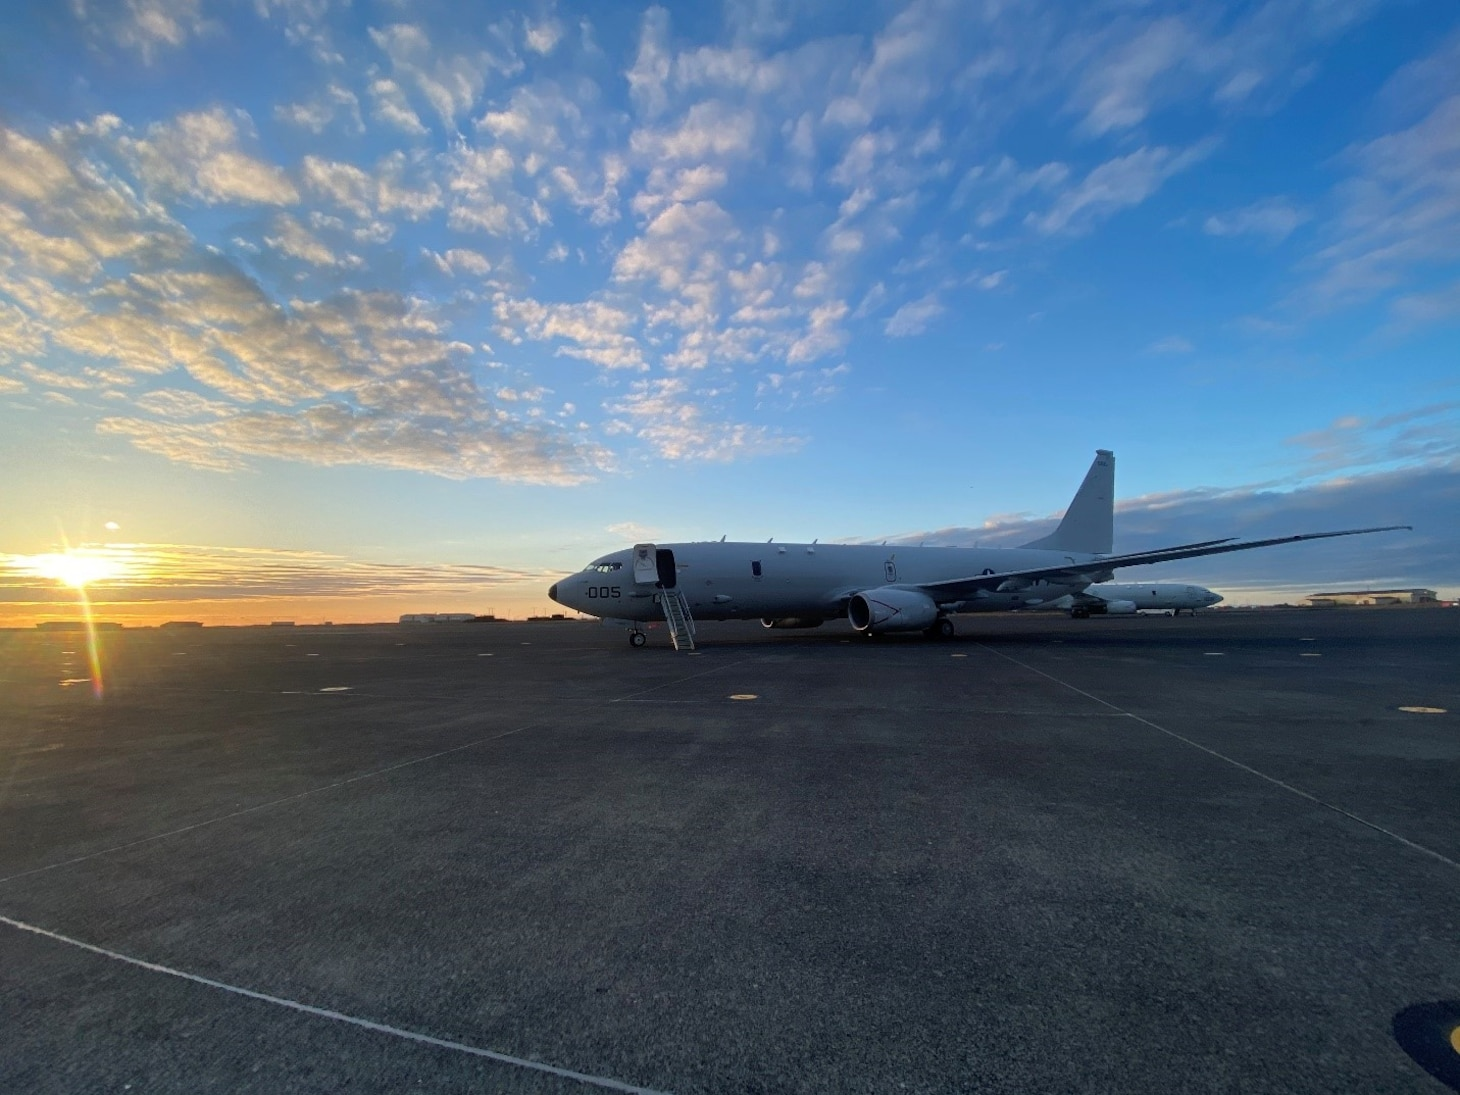 A P-8A Poseidon maritime patrol aircraft from VP-40 conducted exercise detachments out of Keflavik, Iceland and Rota, Spain in addition to supporting operational missions out of Sigonella, Sicily under Commander, U.S. Sixth Fleet and Task Force 67.